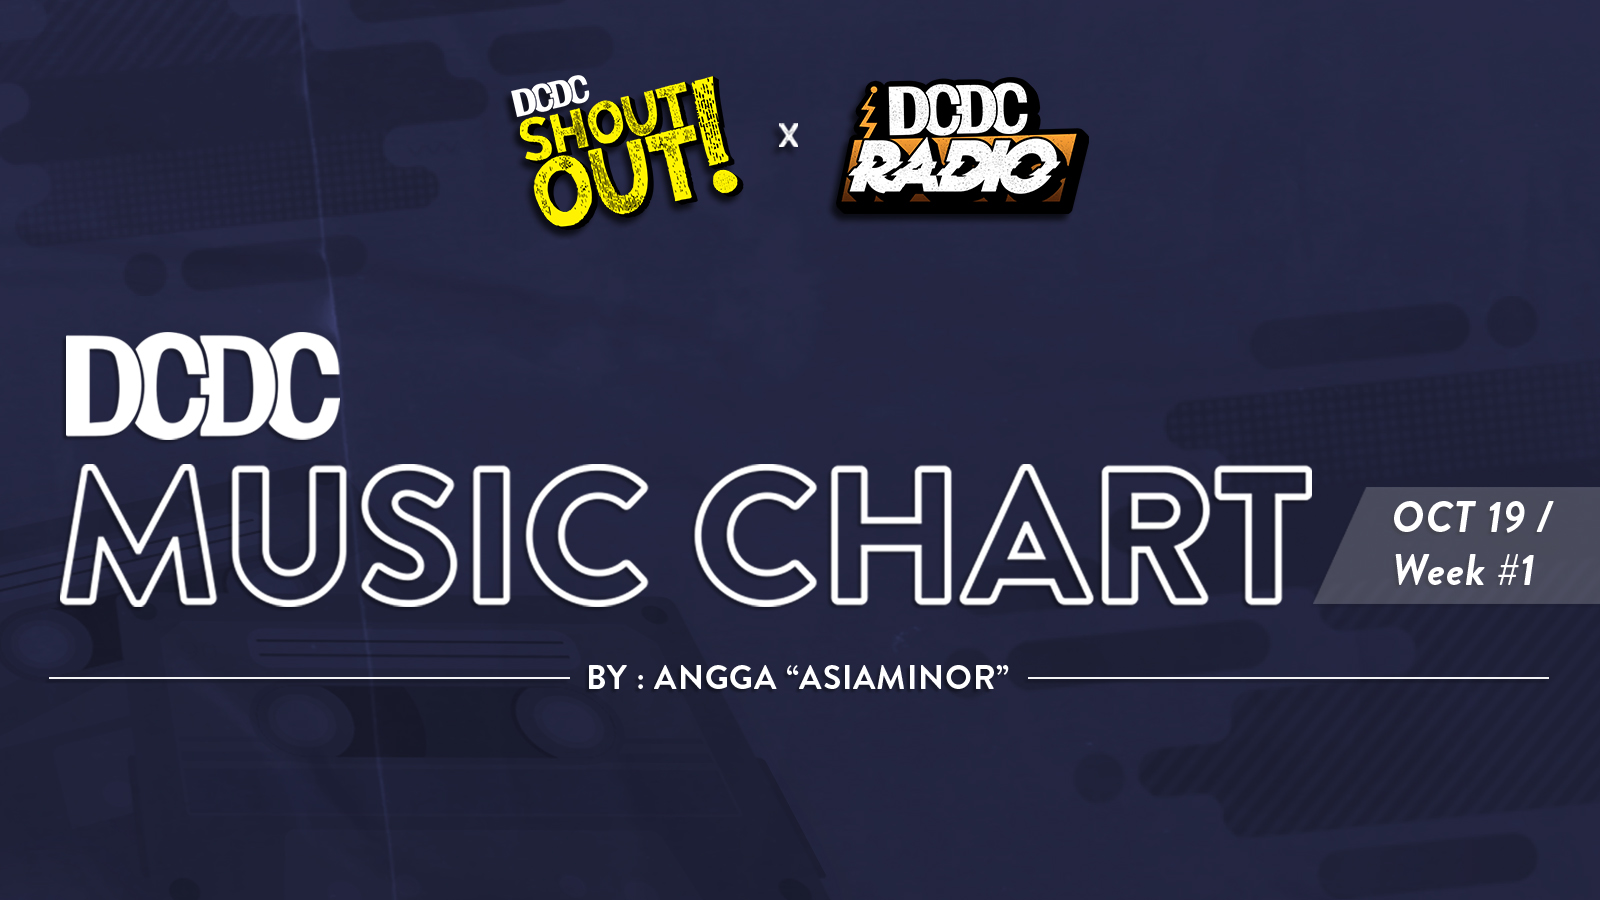 DCDC Music Chart - #1st Week of October 2019